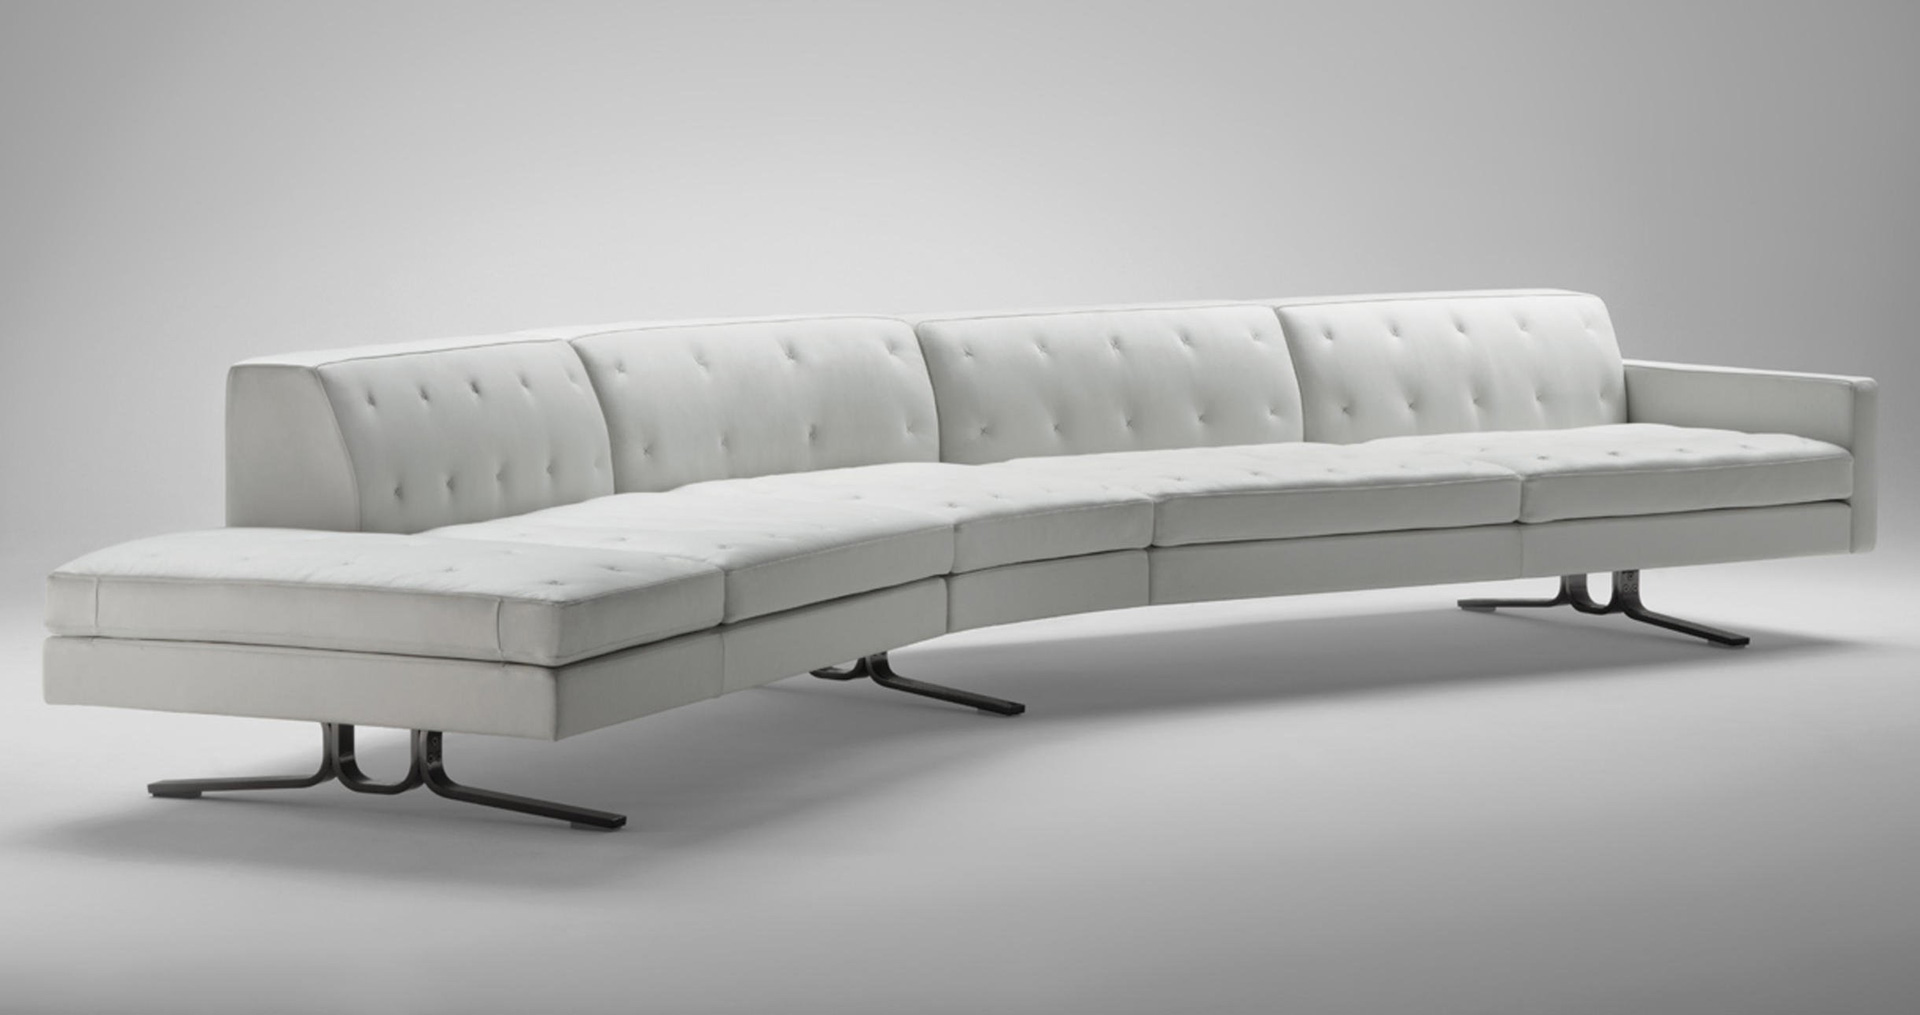 A modular sofa from the Kennedee furniture system, designed by Jean-Marie Massaud| Cross Border Conversations| Rajiv Parekh, Jean-Marie Massaud | STIR